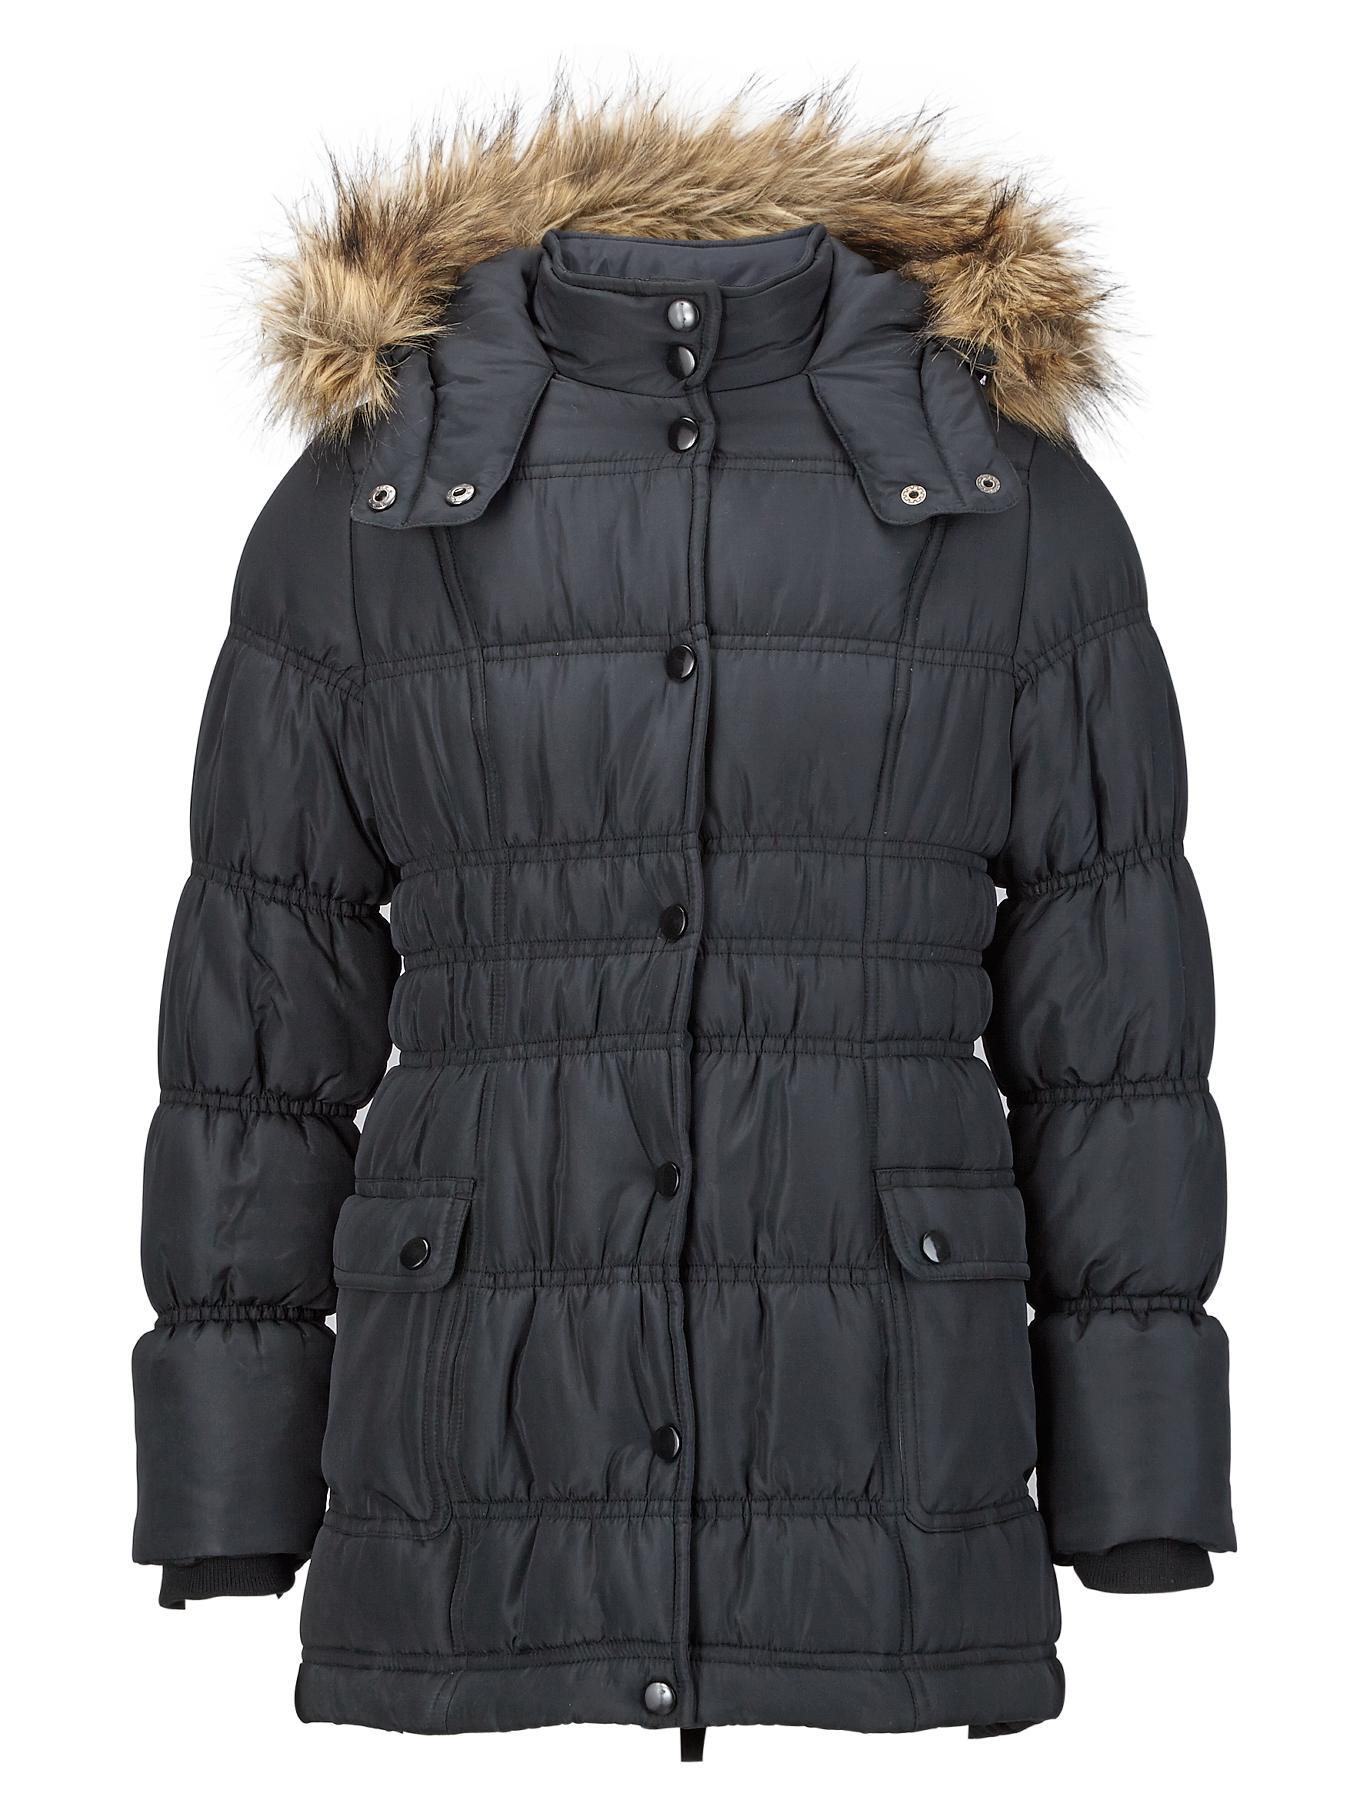 Girls Longline Padded Coat with Faux Fur Hood.